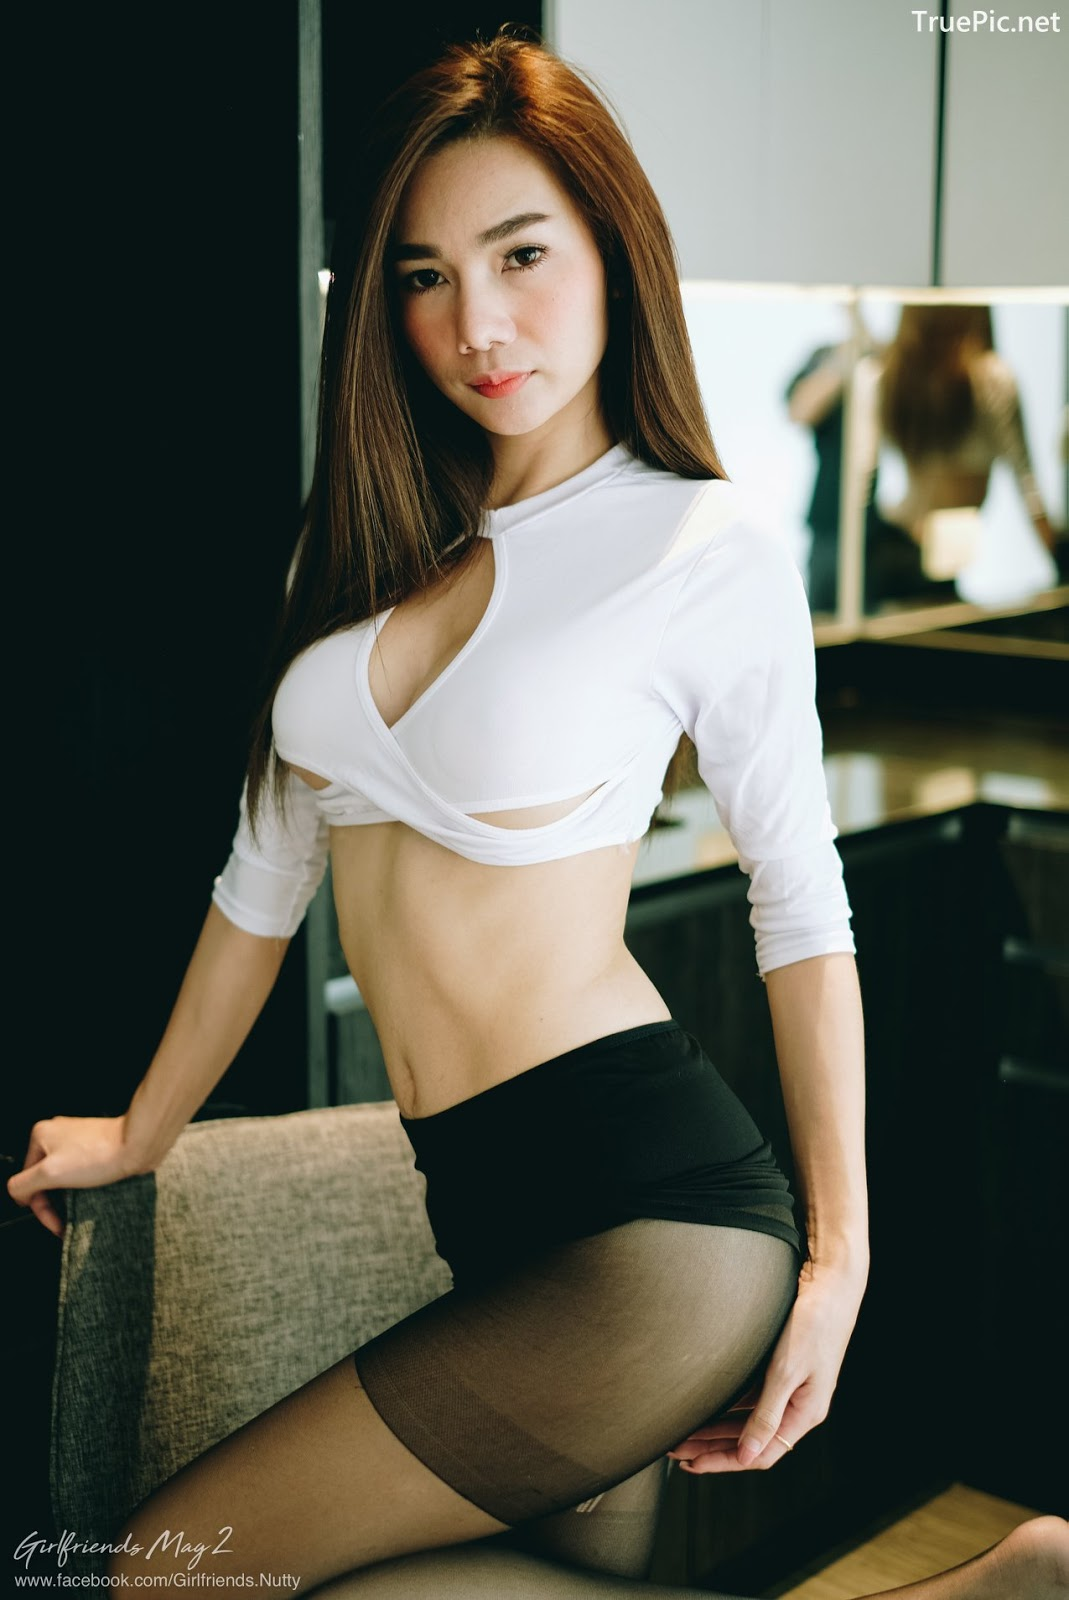 Image Thailand Model - Tadsanapon Kampan - WFH (Work from Hotel) - TruePic.net - Picture-4